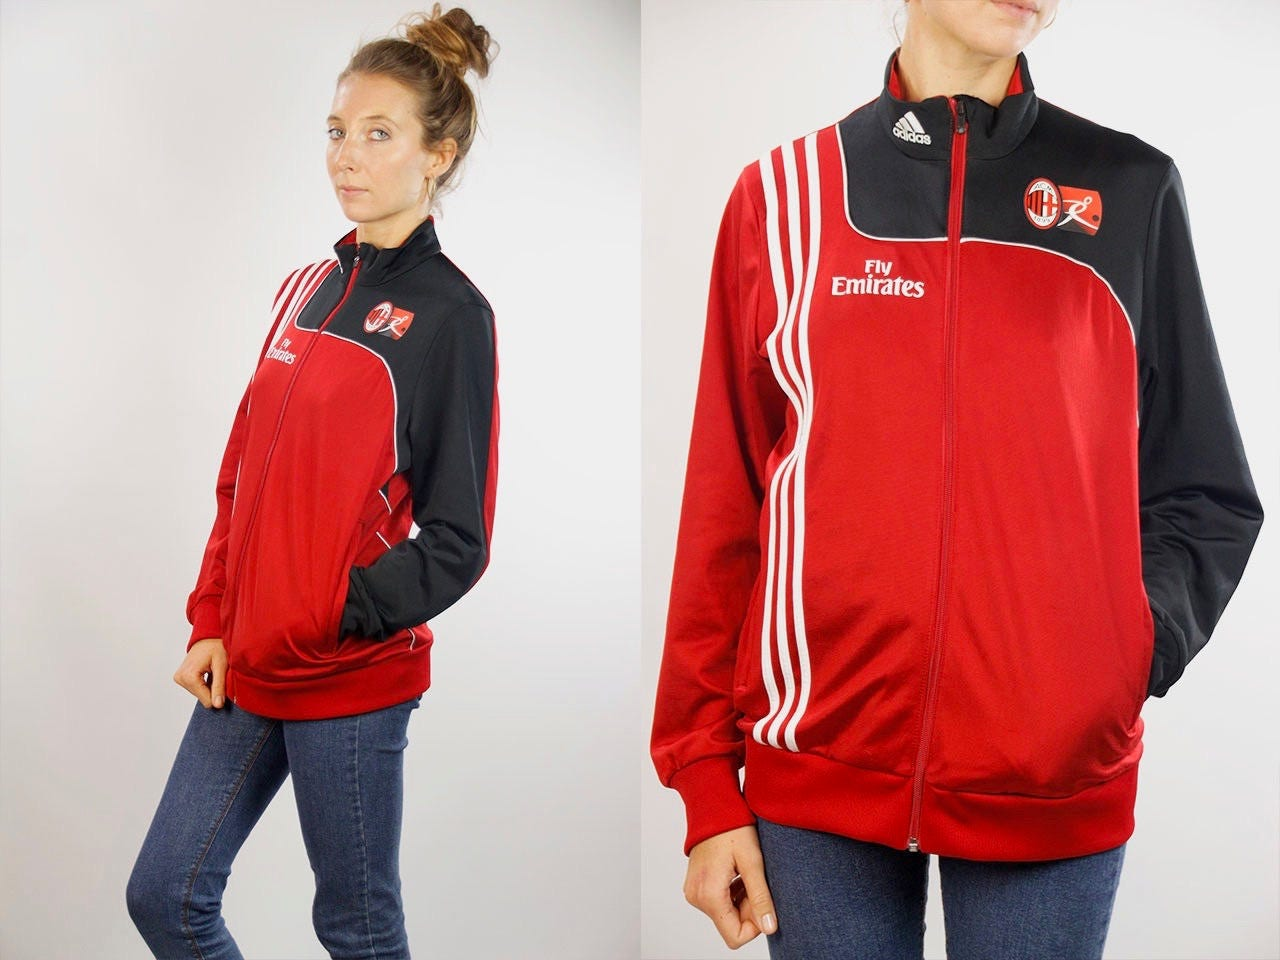 Fly Emirates Jacket Adidas Windbreaker Adidas Track